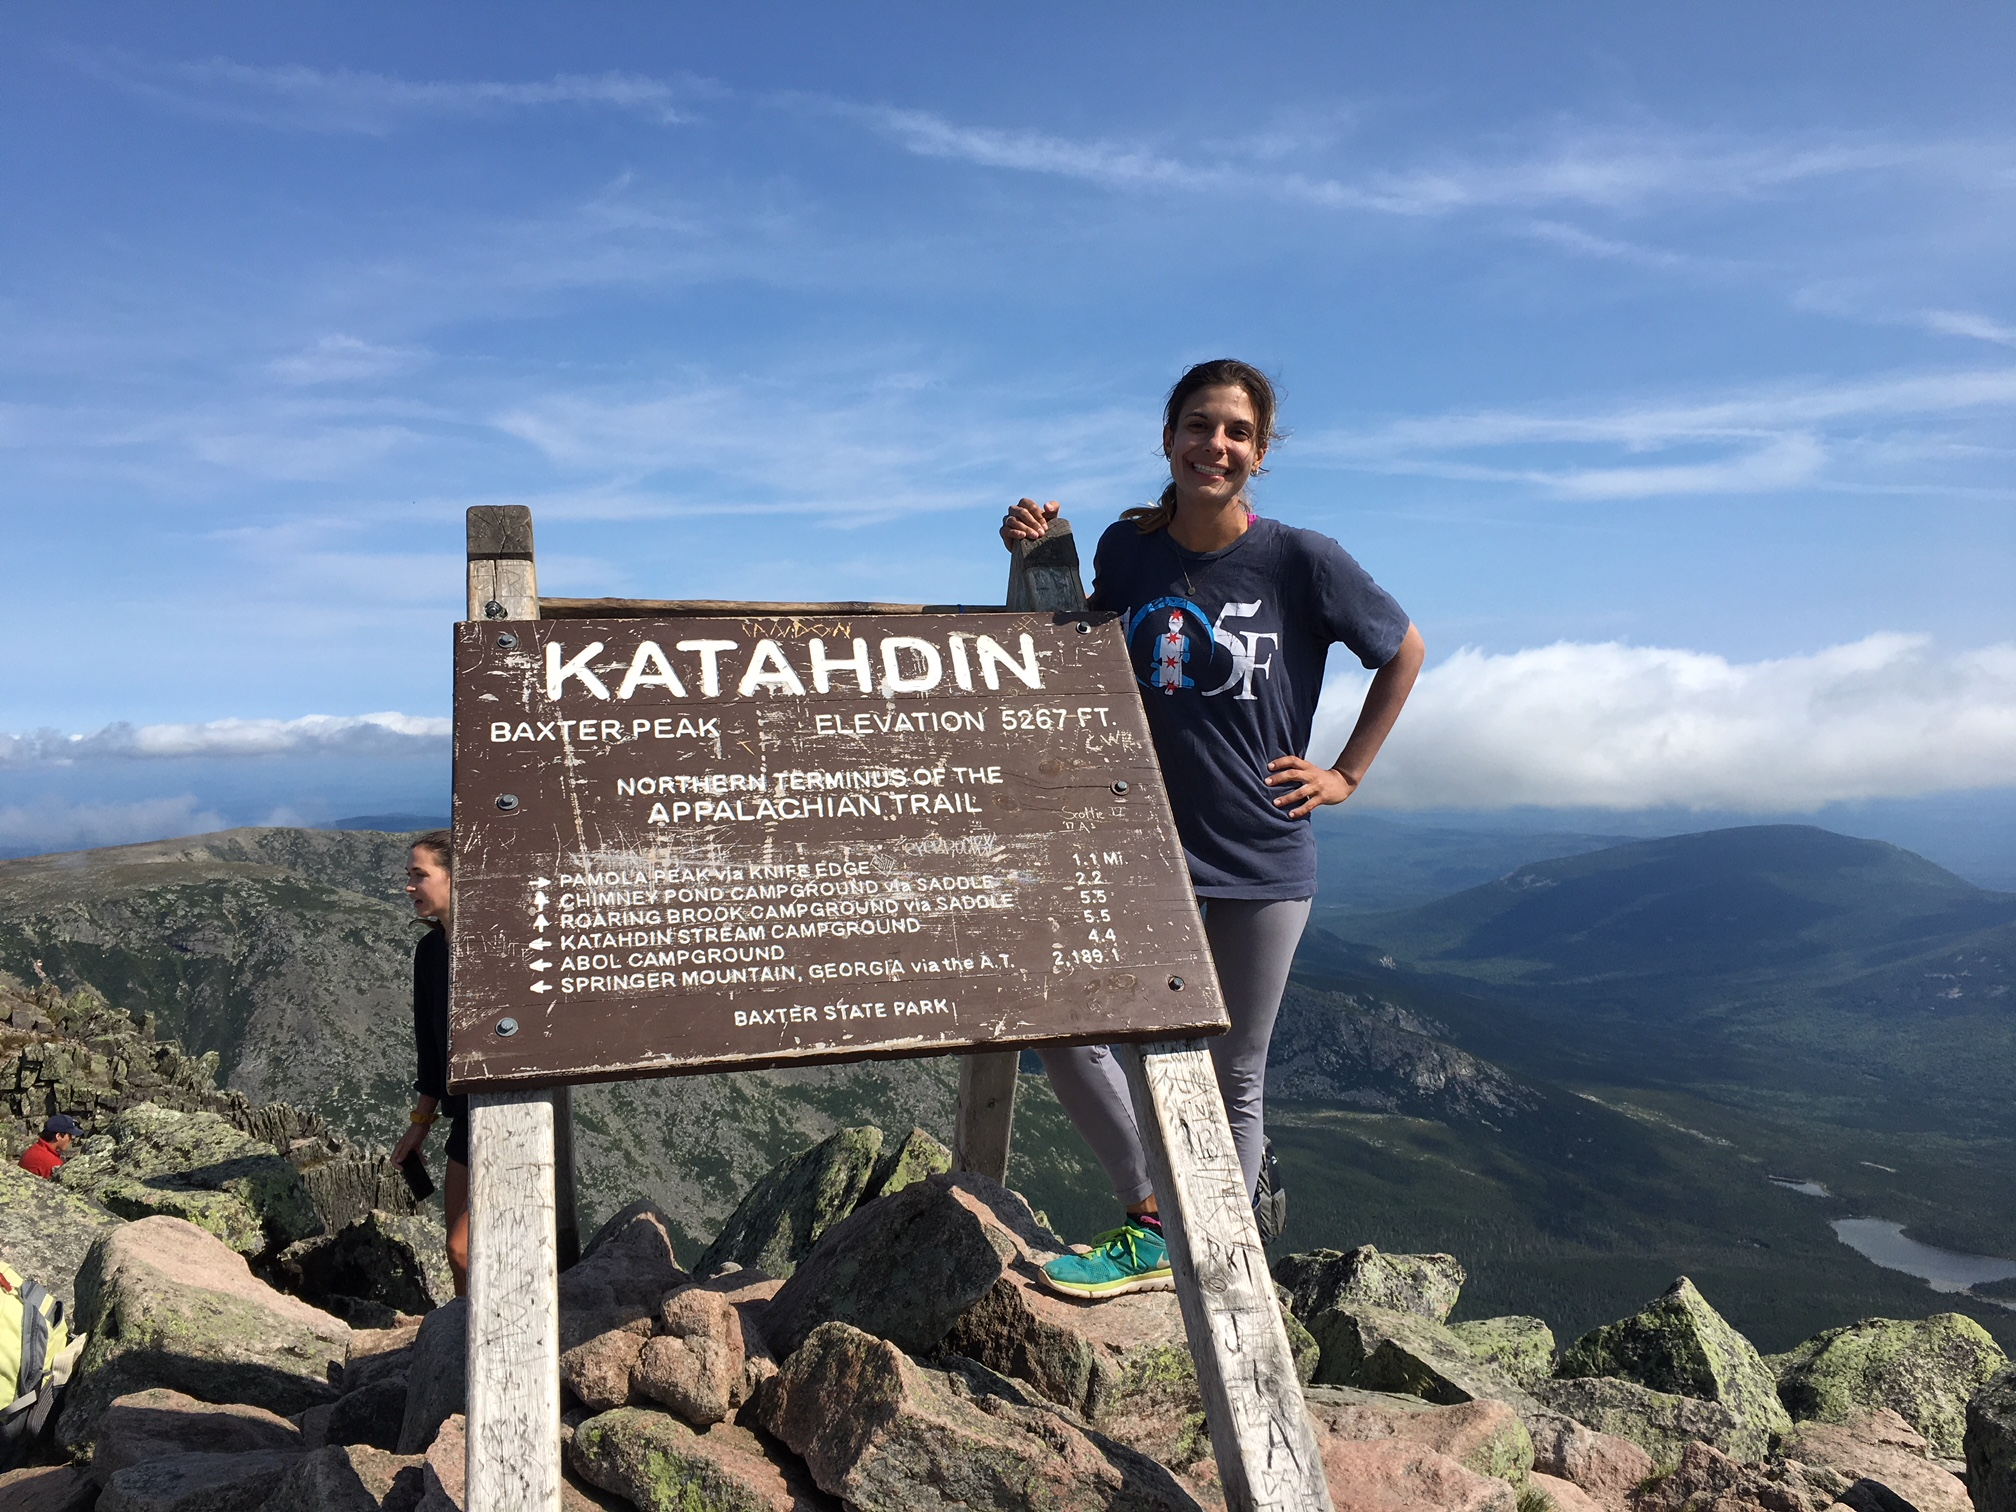 The clouds parted and the views were incredible from the top of Katahdin!